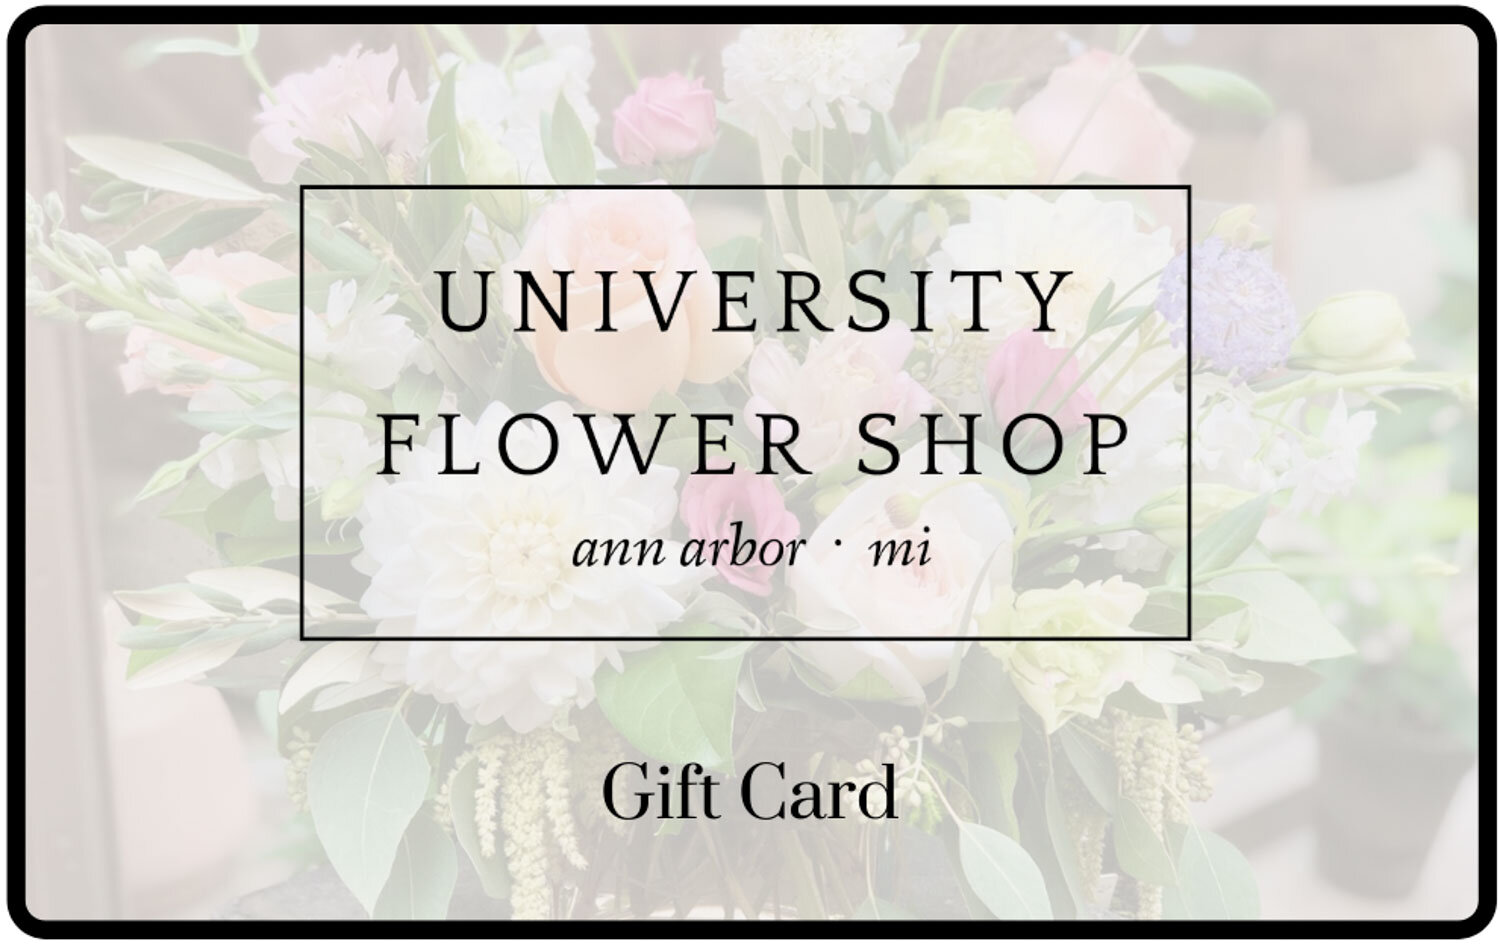 Give the Gift ofFlowers or Houseplants! - A University Flower Shop gift card is the perfect way to celebrate family and friends by giving them the opportunity to pick out their own floral design or beautiful houseplant!